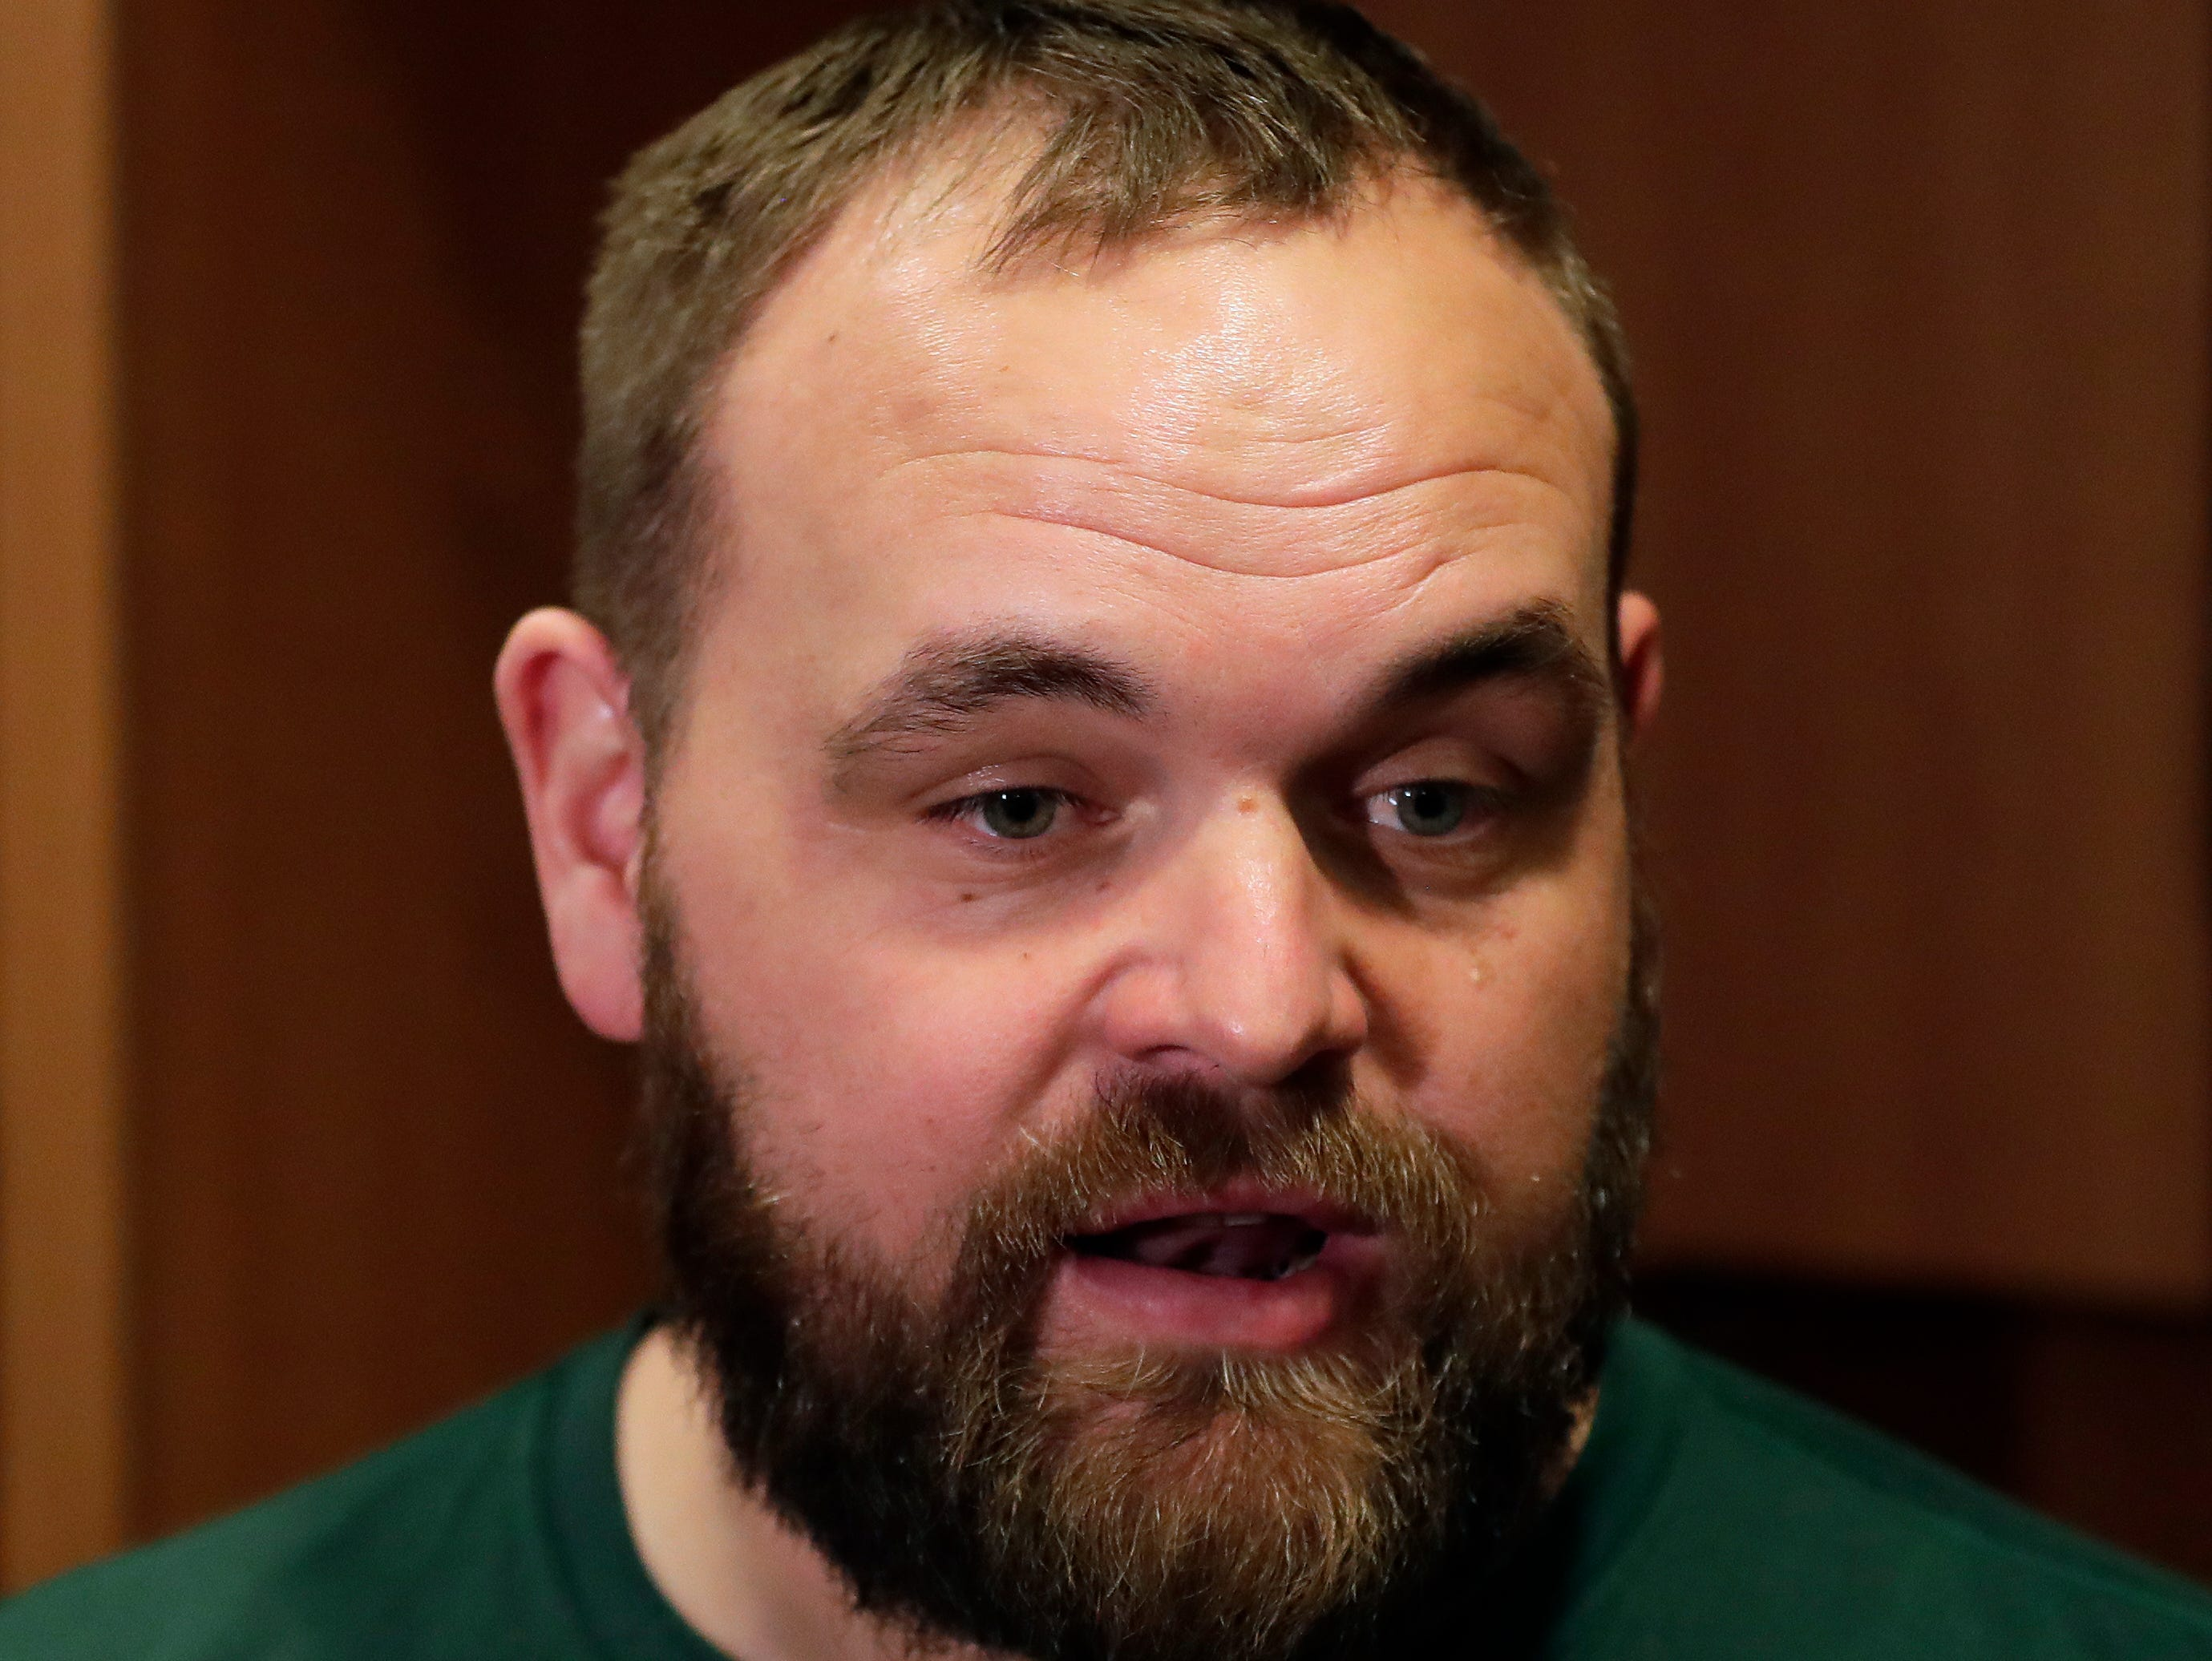 Luke Butkus, Green Bay Packers assistant offensive line coach, speaks with media on Feb. 18, 2019, at Lambeau Field in Green Bay, Wis.